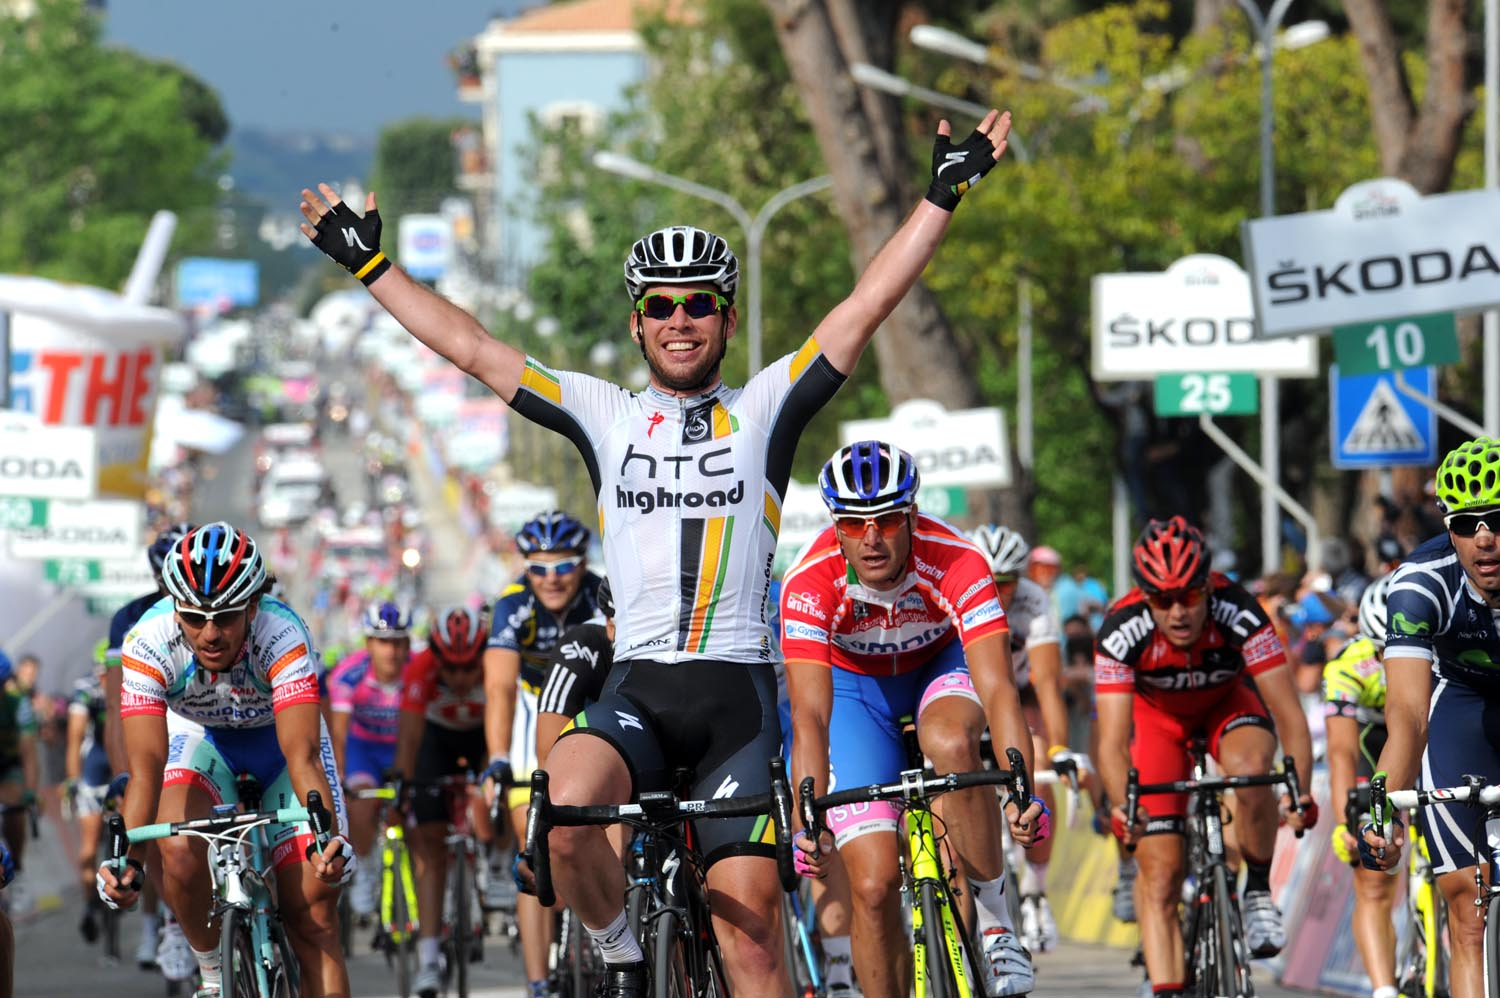 Mark Cavendish wins stage 10, Giro d